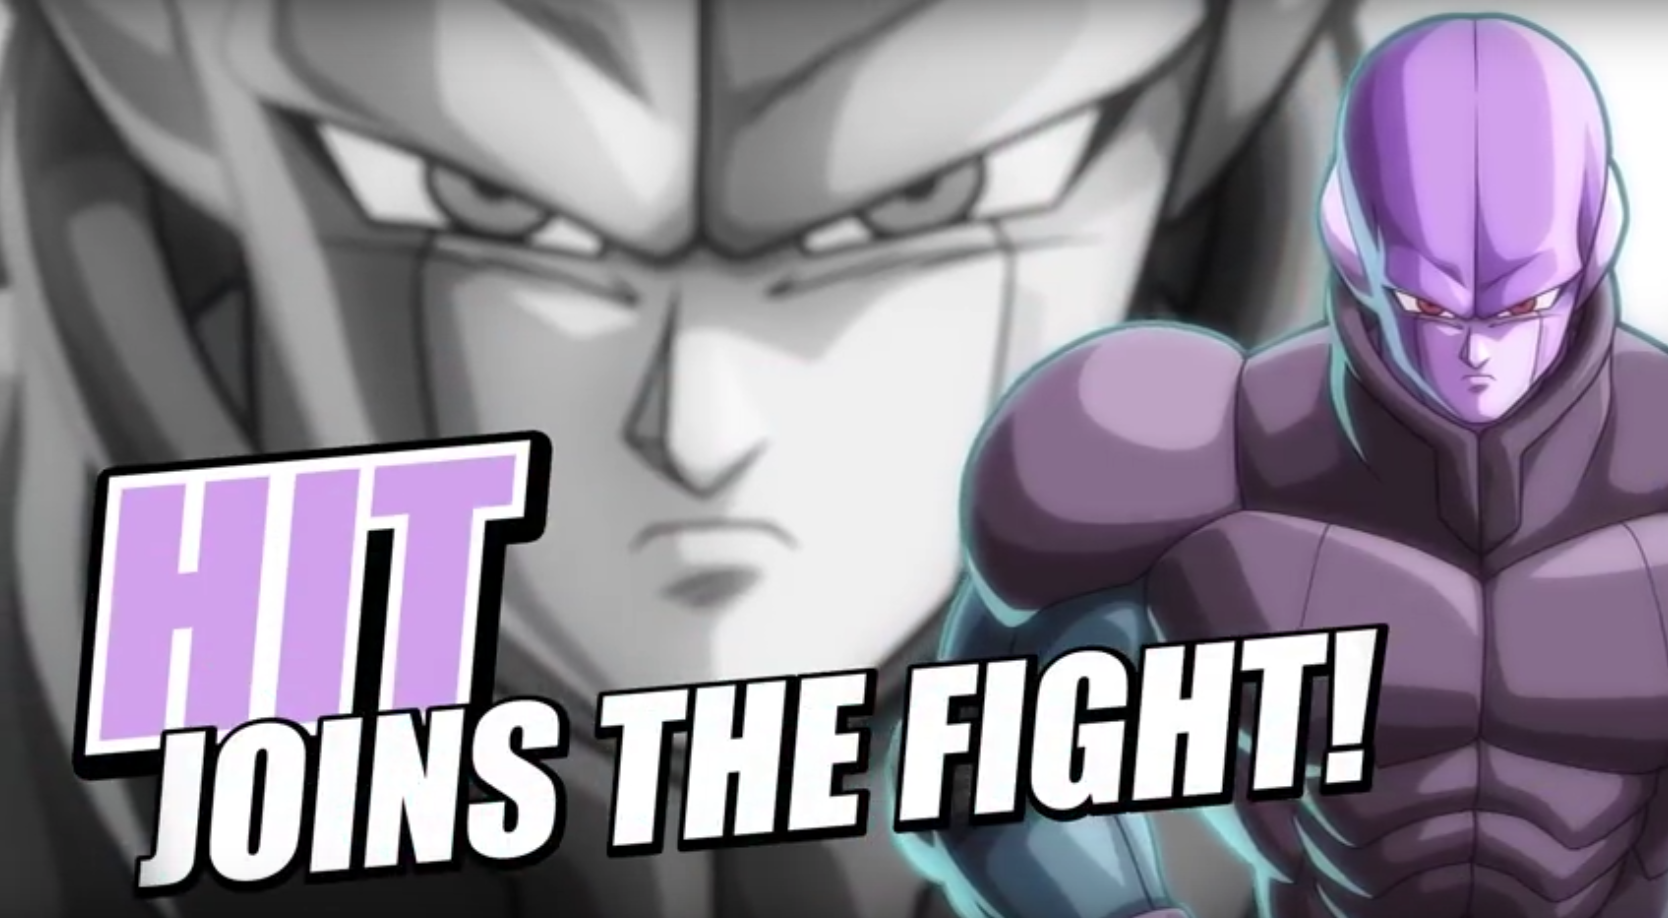 Dragon Ball Fighterz - Hit Joins the Fight